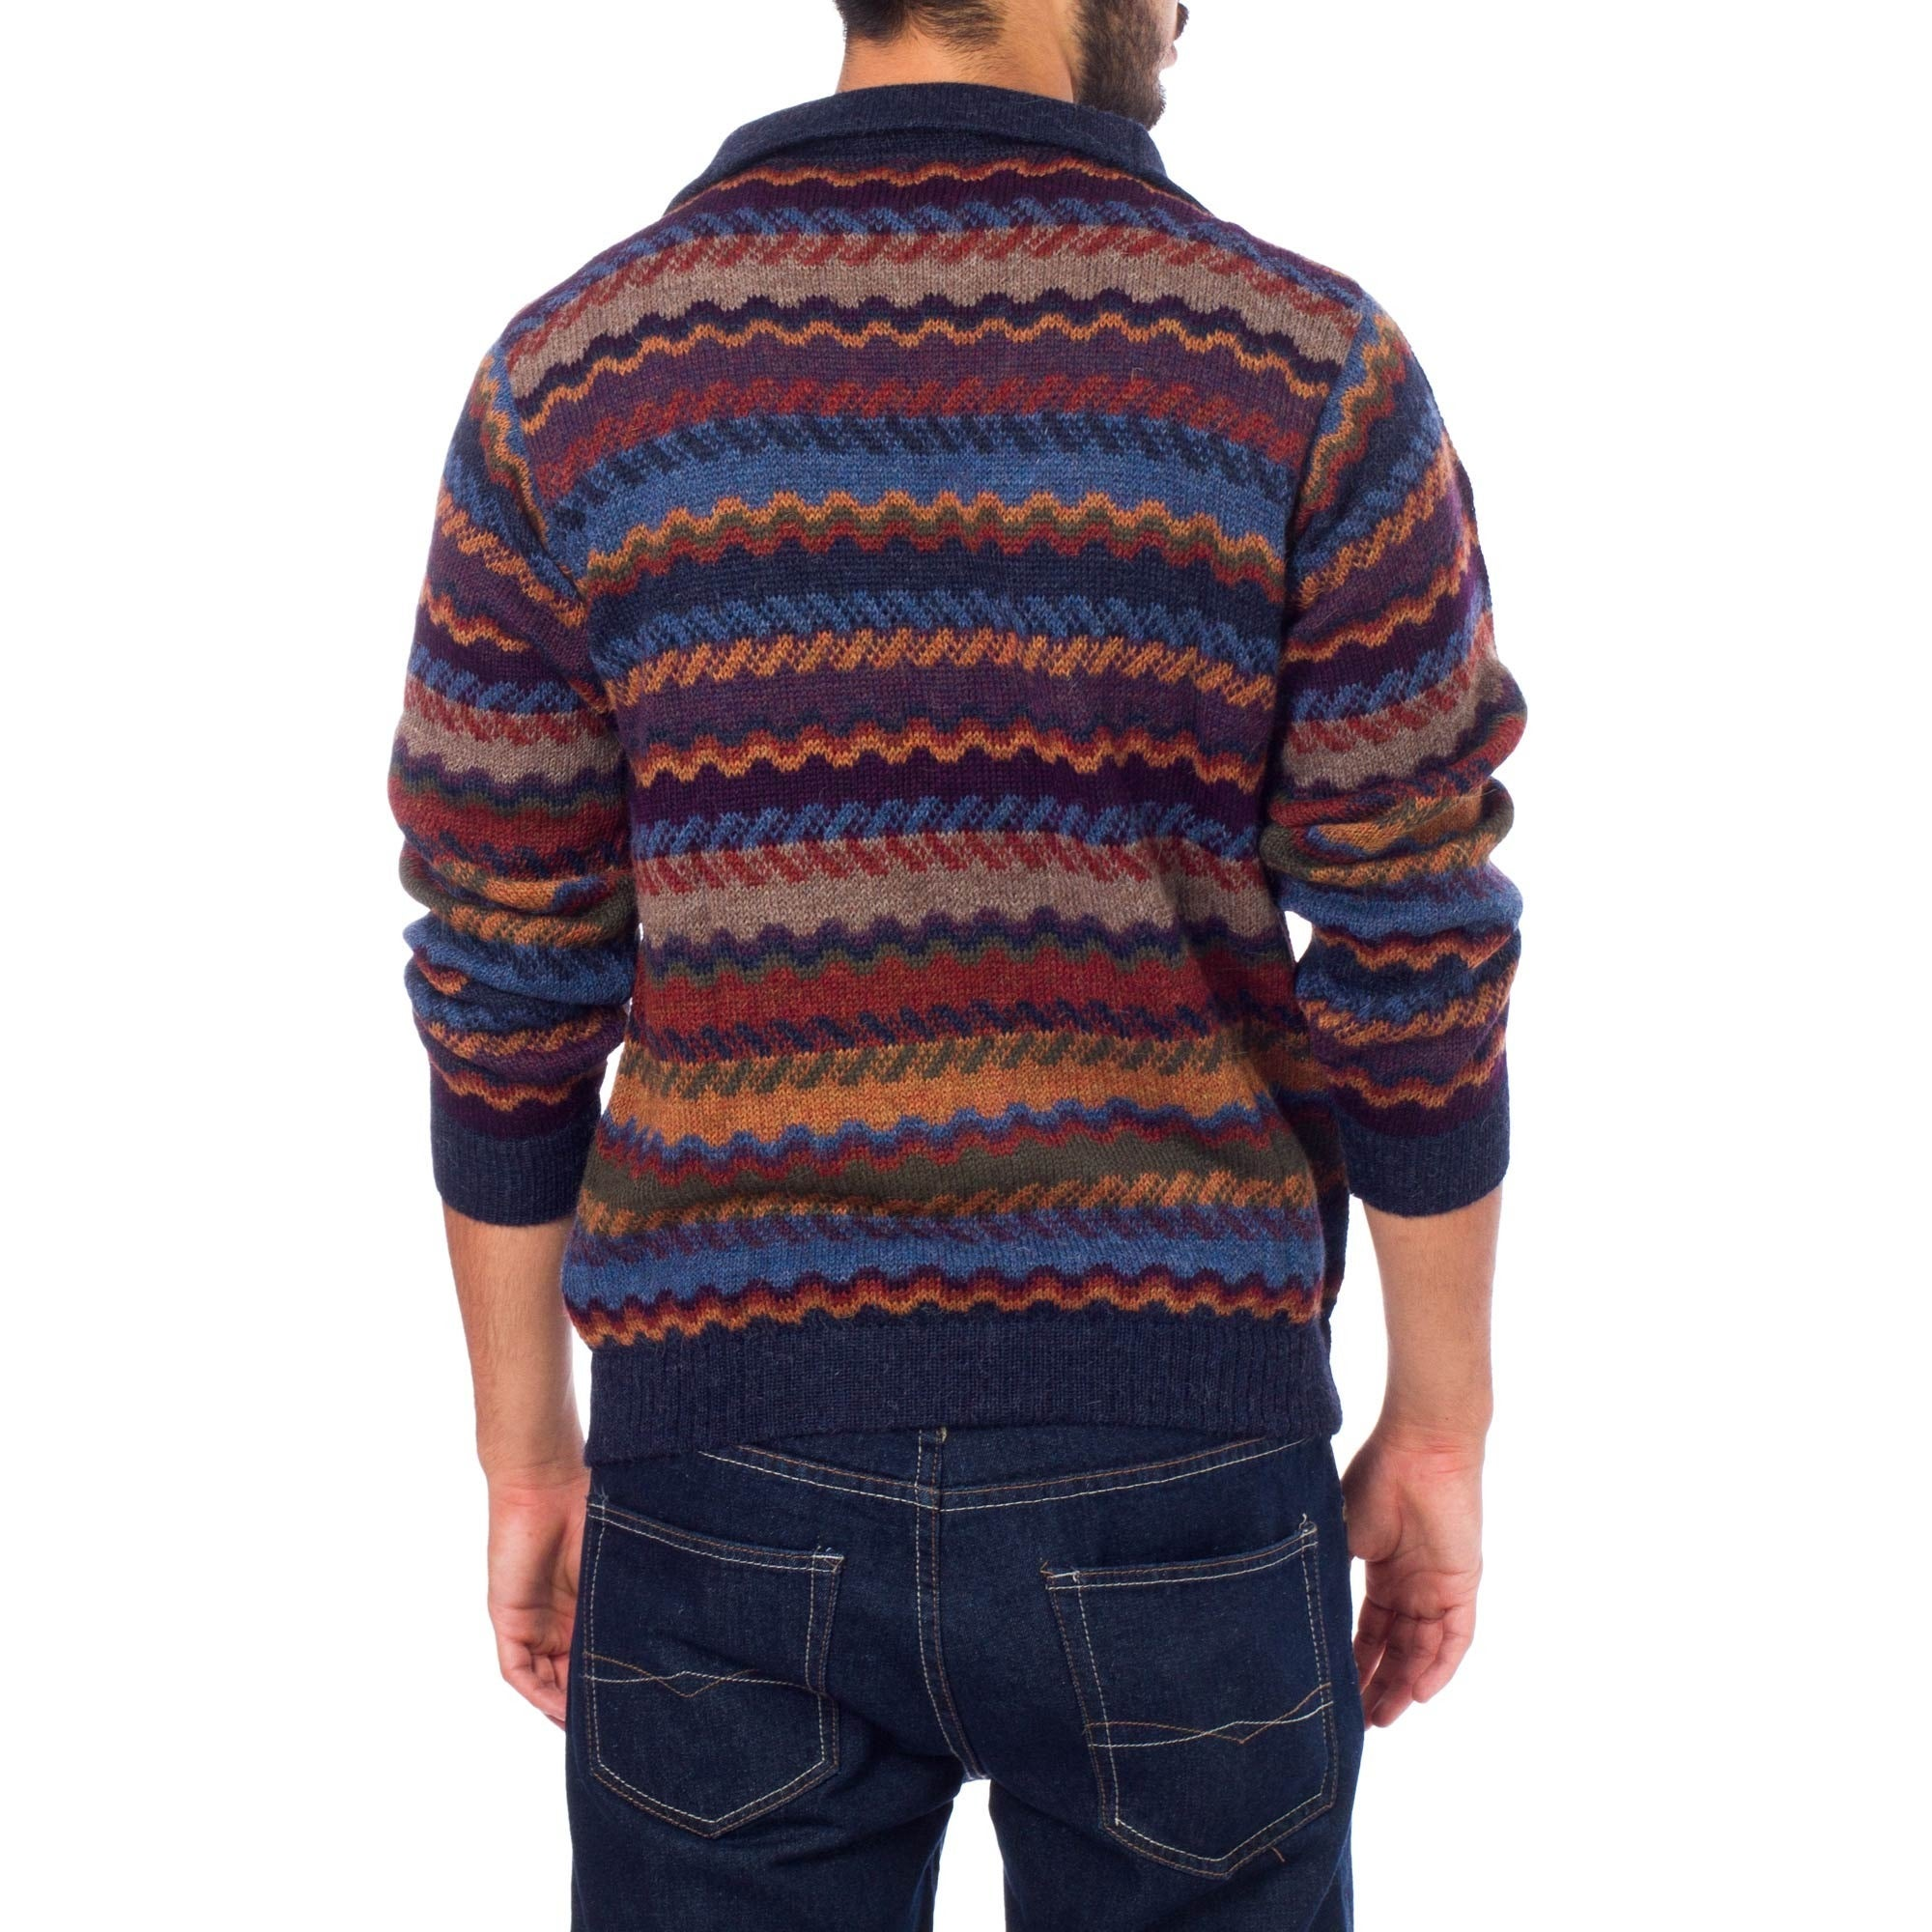 916584c50d Mountain Life Multicolor Patterned 100-percent Alpaca Wool Casual Collared  Long Sleeve Quarter-zip Mens Pullover Sweater (Peru)